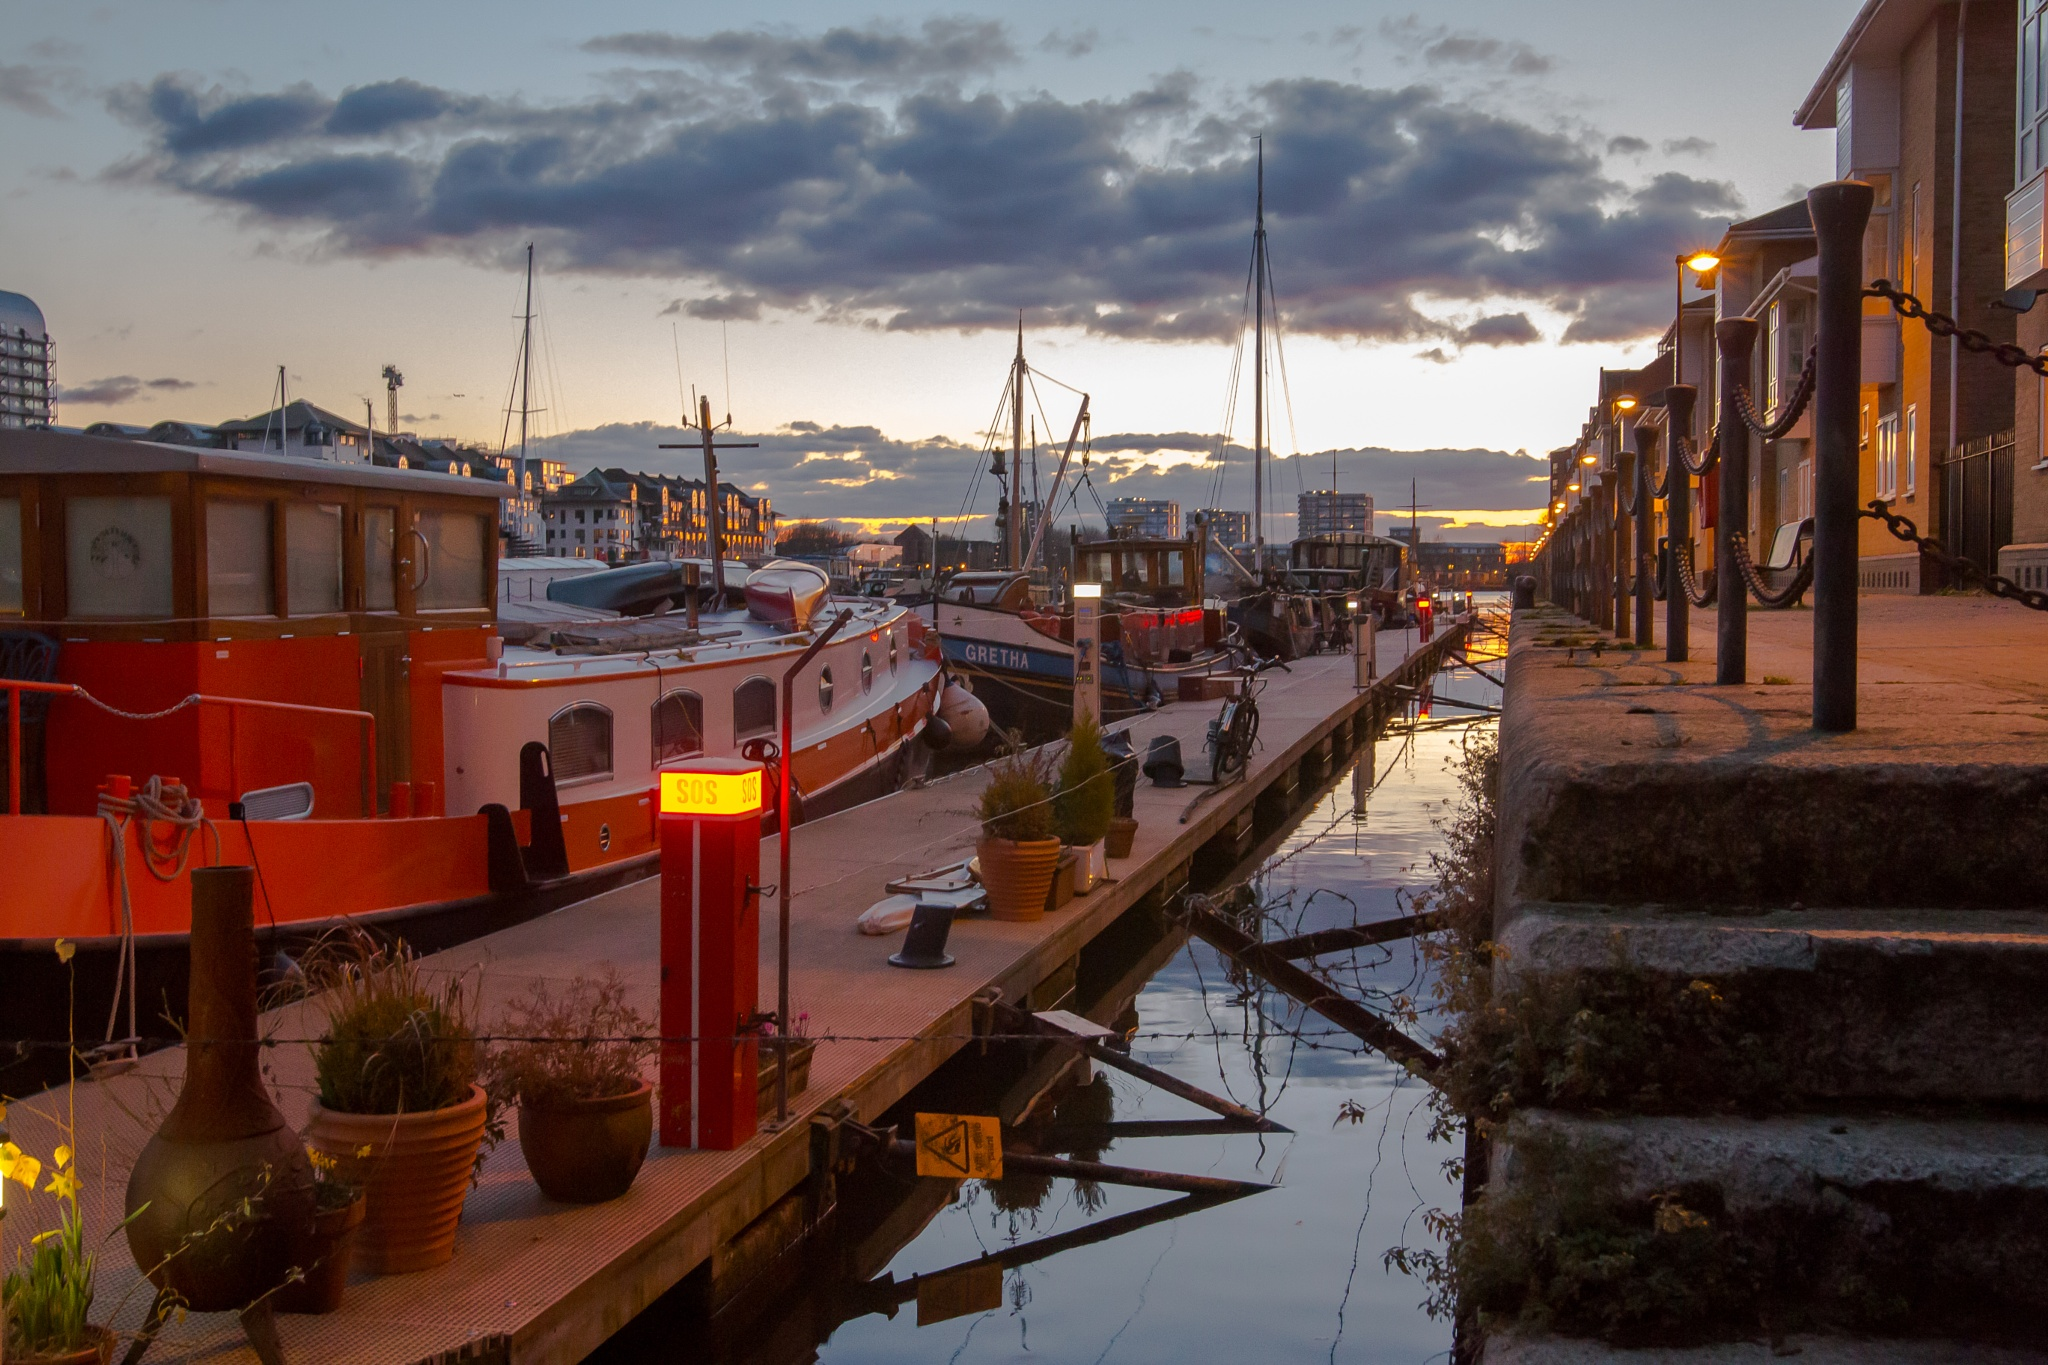 Docks opposite canary wharf by lingwhang